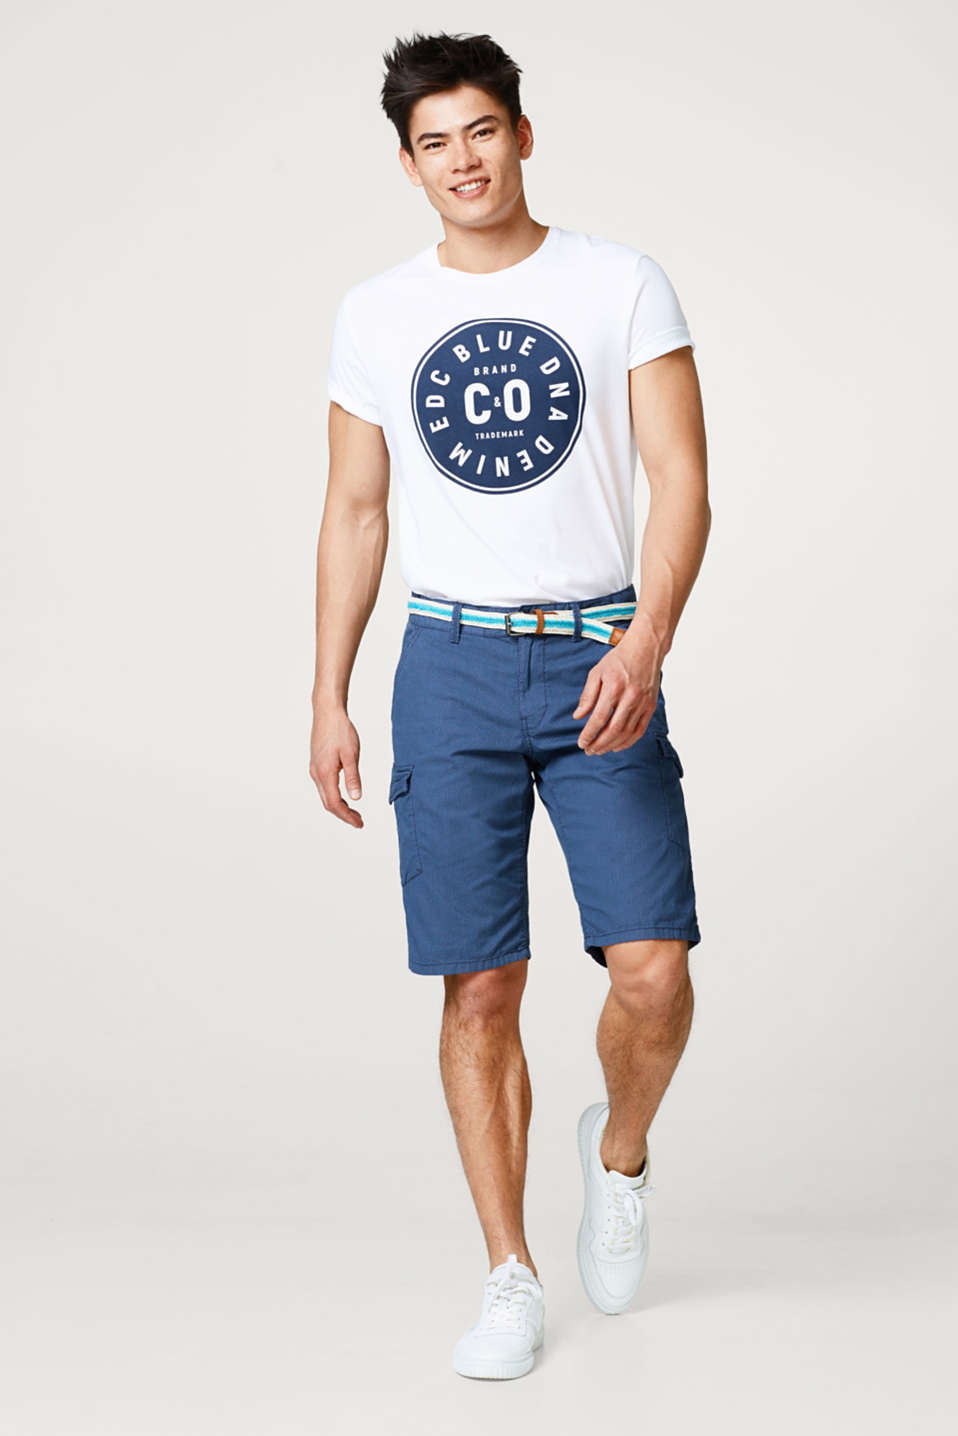 Cargo shorts with a fine textured print and belt